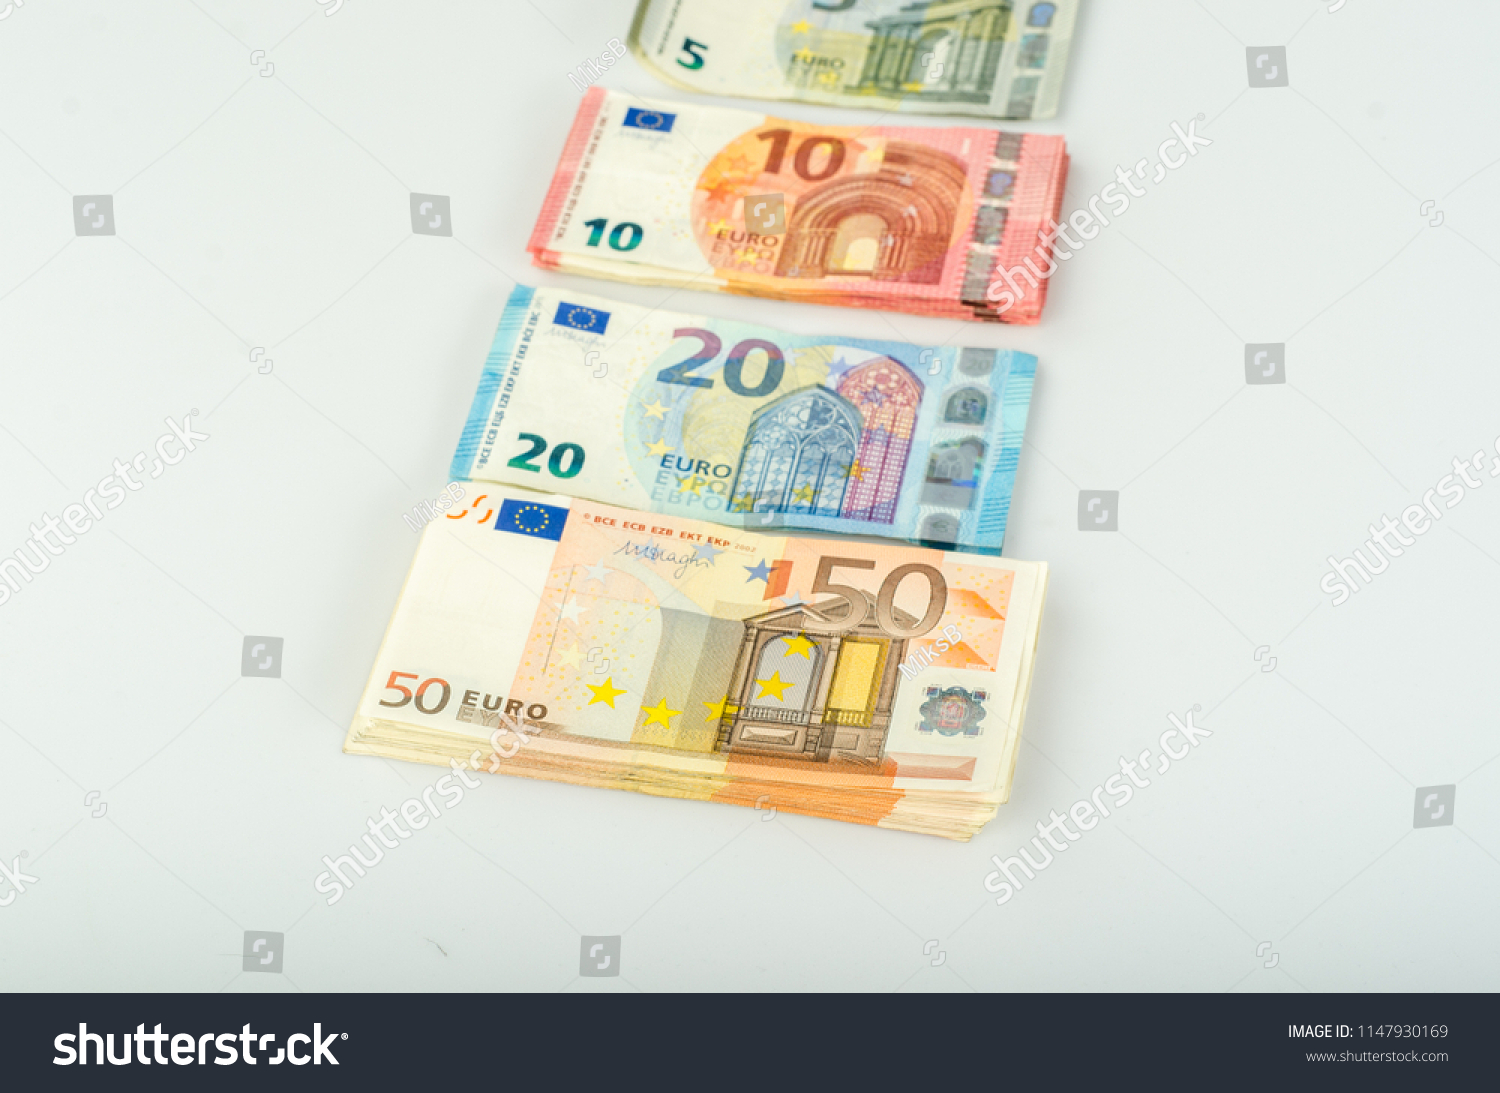 Euro Banknotes Stacked By Value On Stock Photo (Edit Now) 1147930169